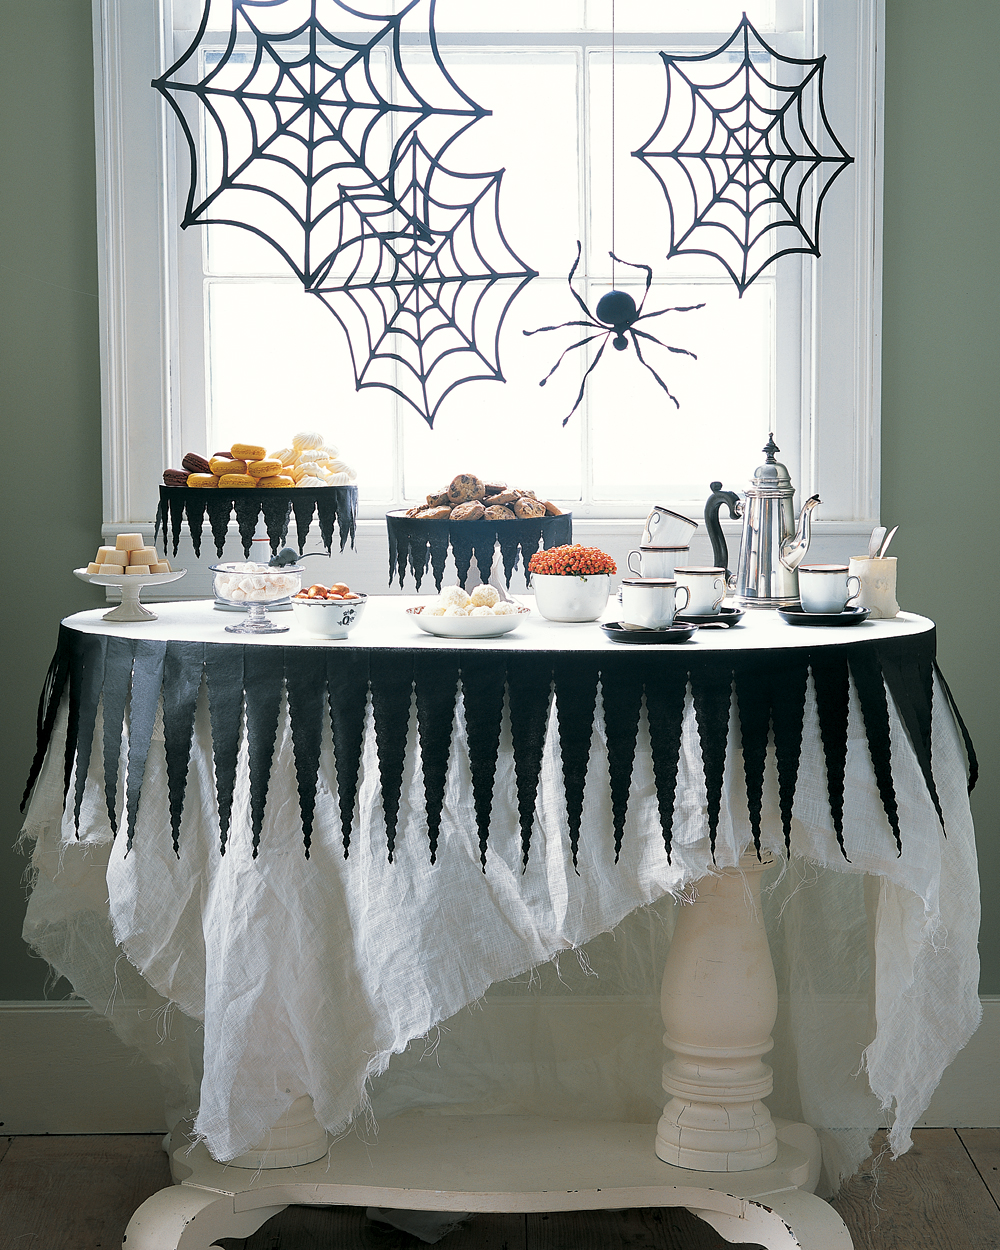 Tattered Tablecloth and Spider Webs